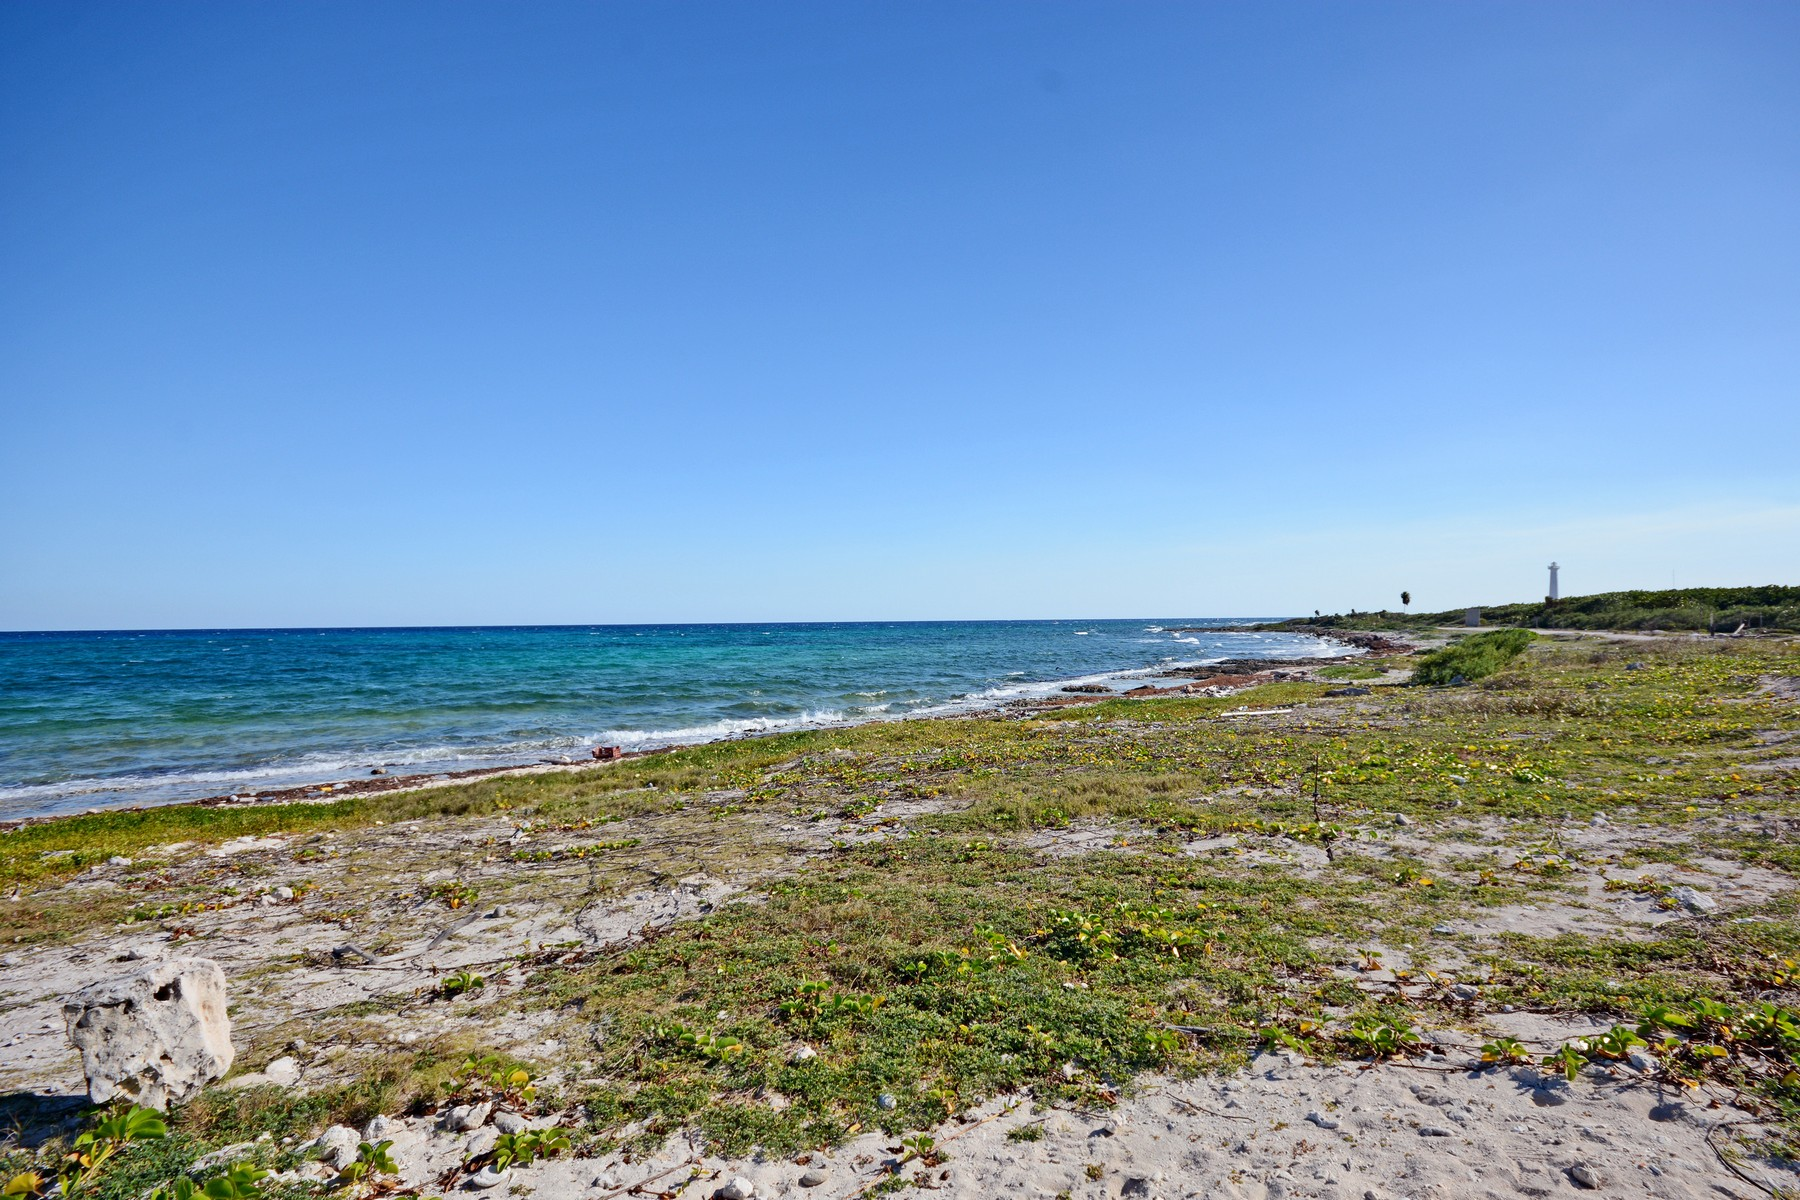 Additional photo for property listing at LOTE CON FRENTE DE PLAYA EN MAJAHUAL Beachfront Majahual Lot Carretera Cafetal-Majahual Majahual, Quintana Roo 77976 México